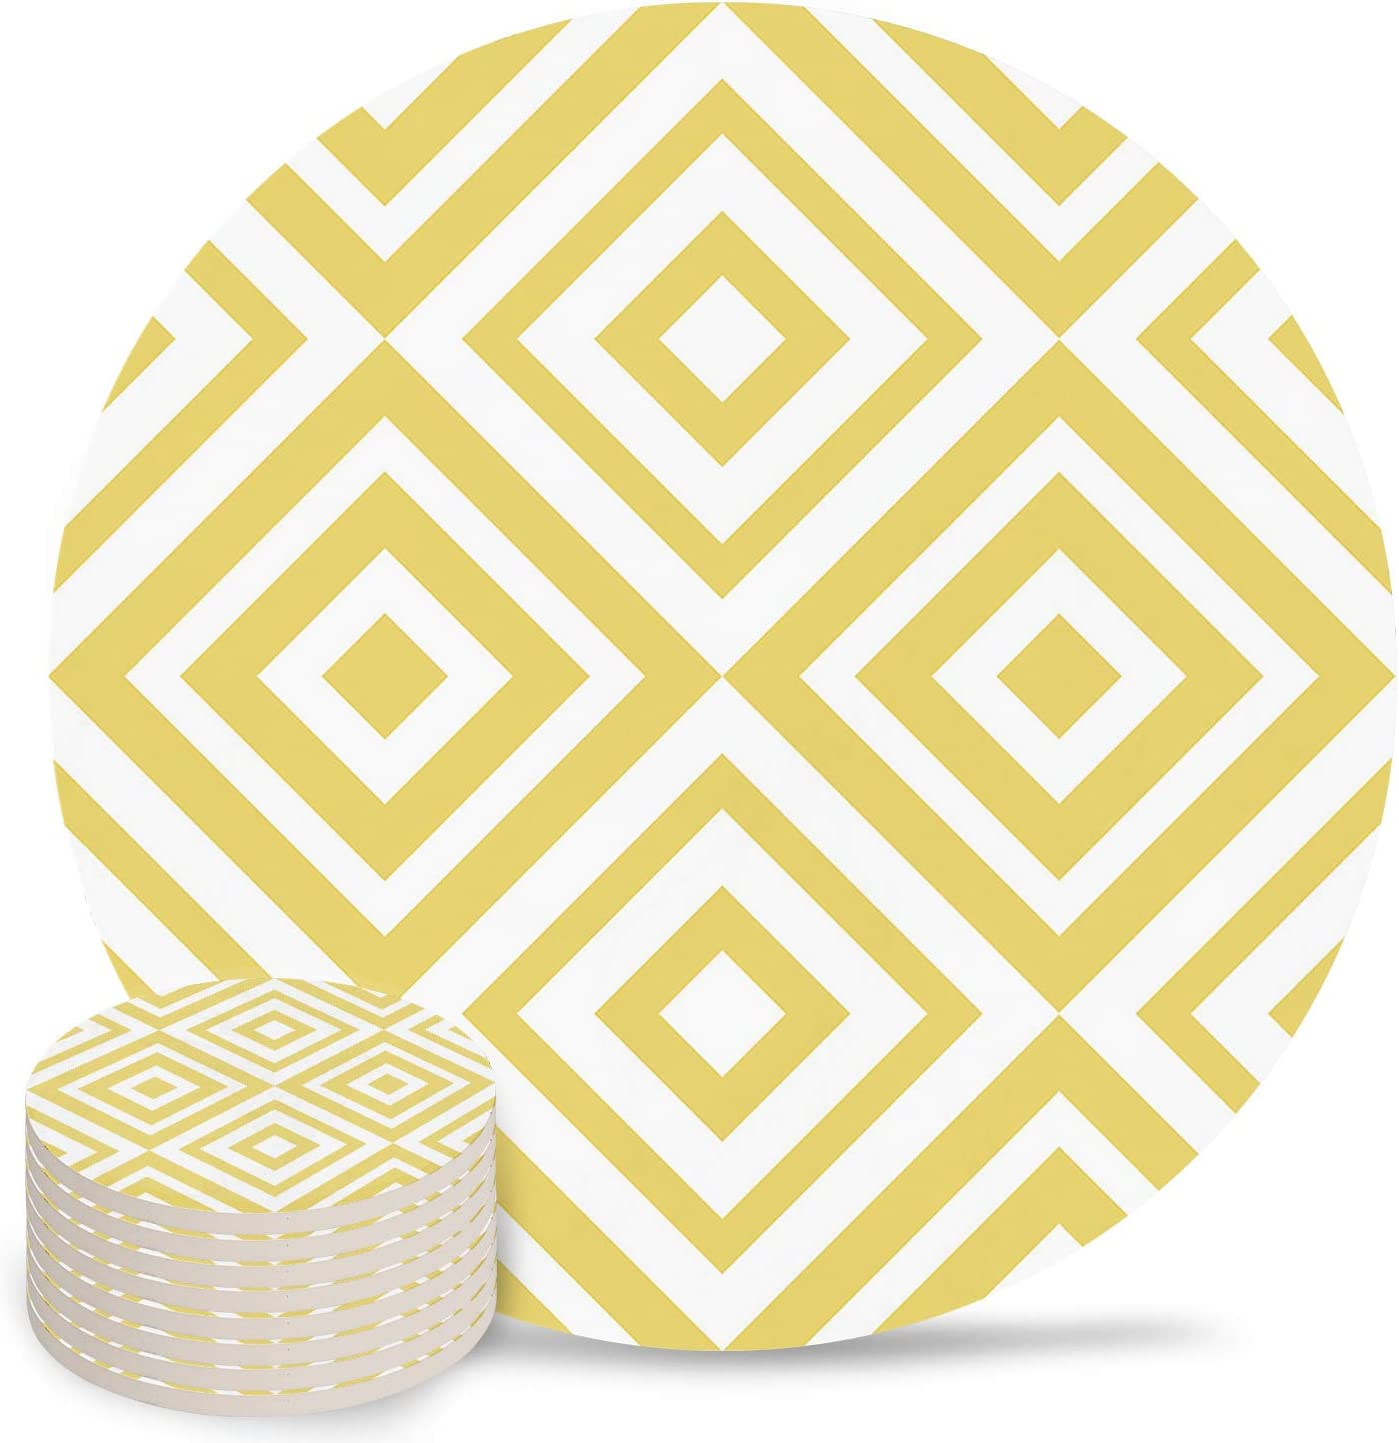 Absorbent Coasters Oklahoma City Mall Ceramic Cups Place Geome Mats Albuquerque Mall Abstract Yellow